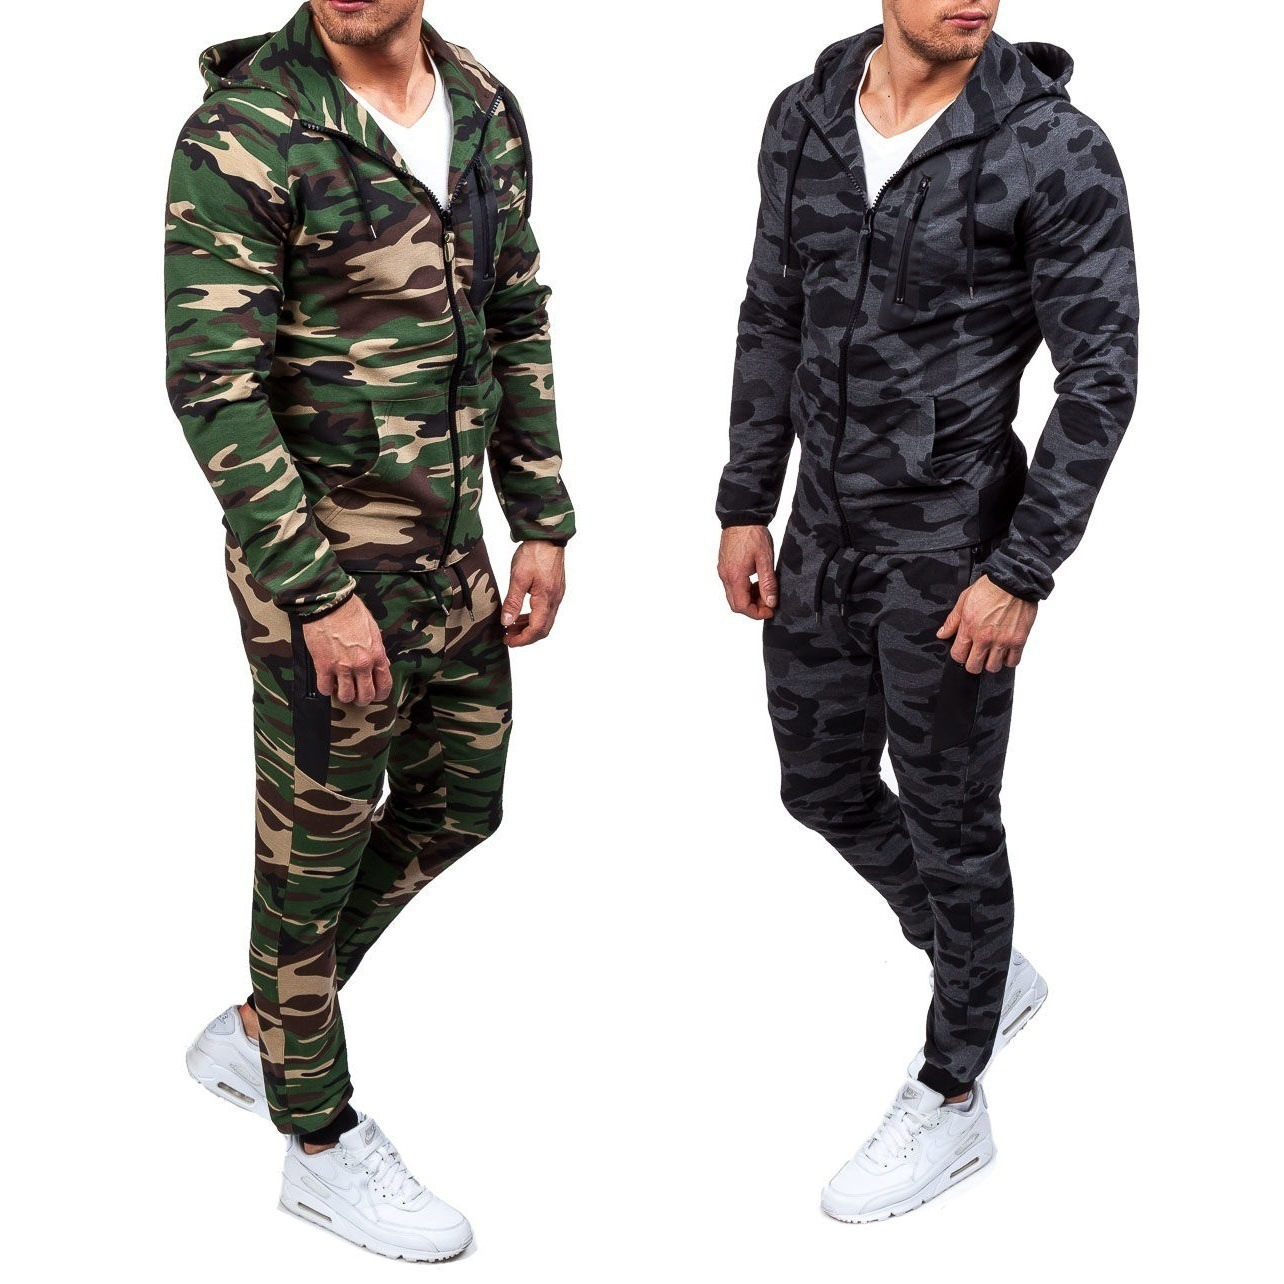 Zogaa 2019 New Camouflage Printed Men Set Causal Jacket Men 2pcs Tracksuit Sportswear Hoodies Sweatshirt Pants Jogger Suit